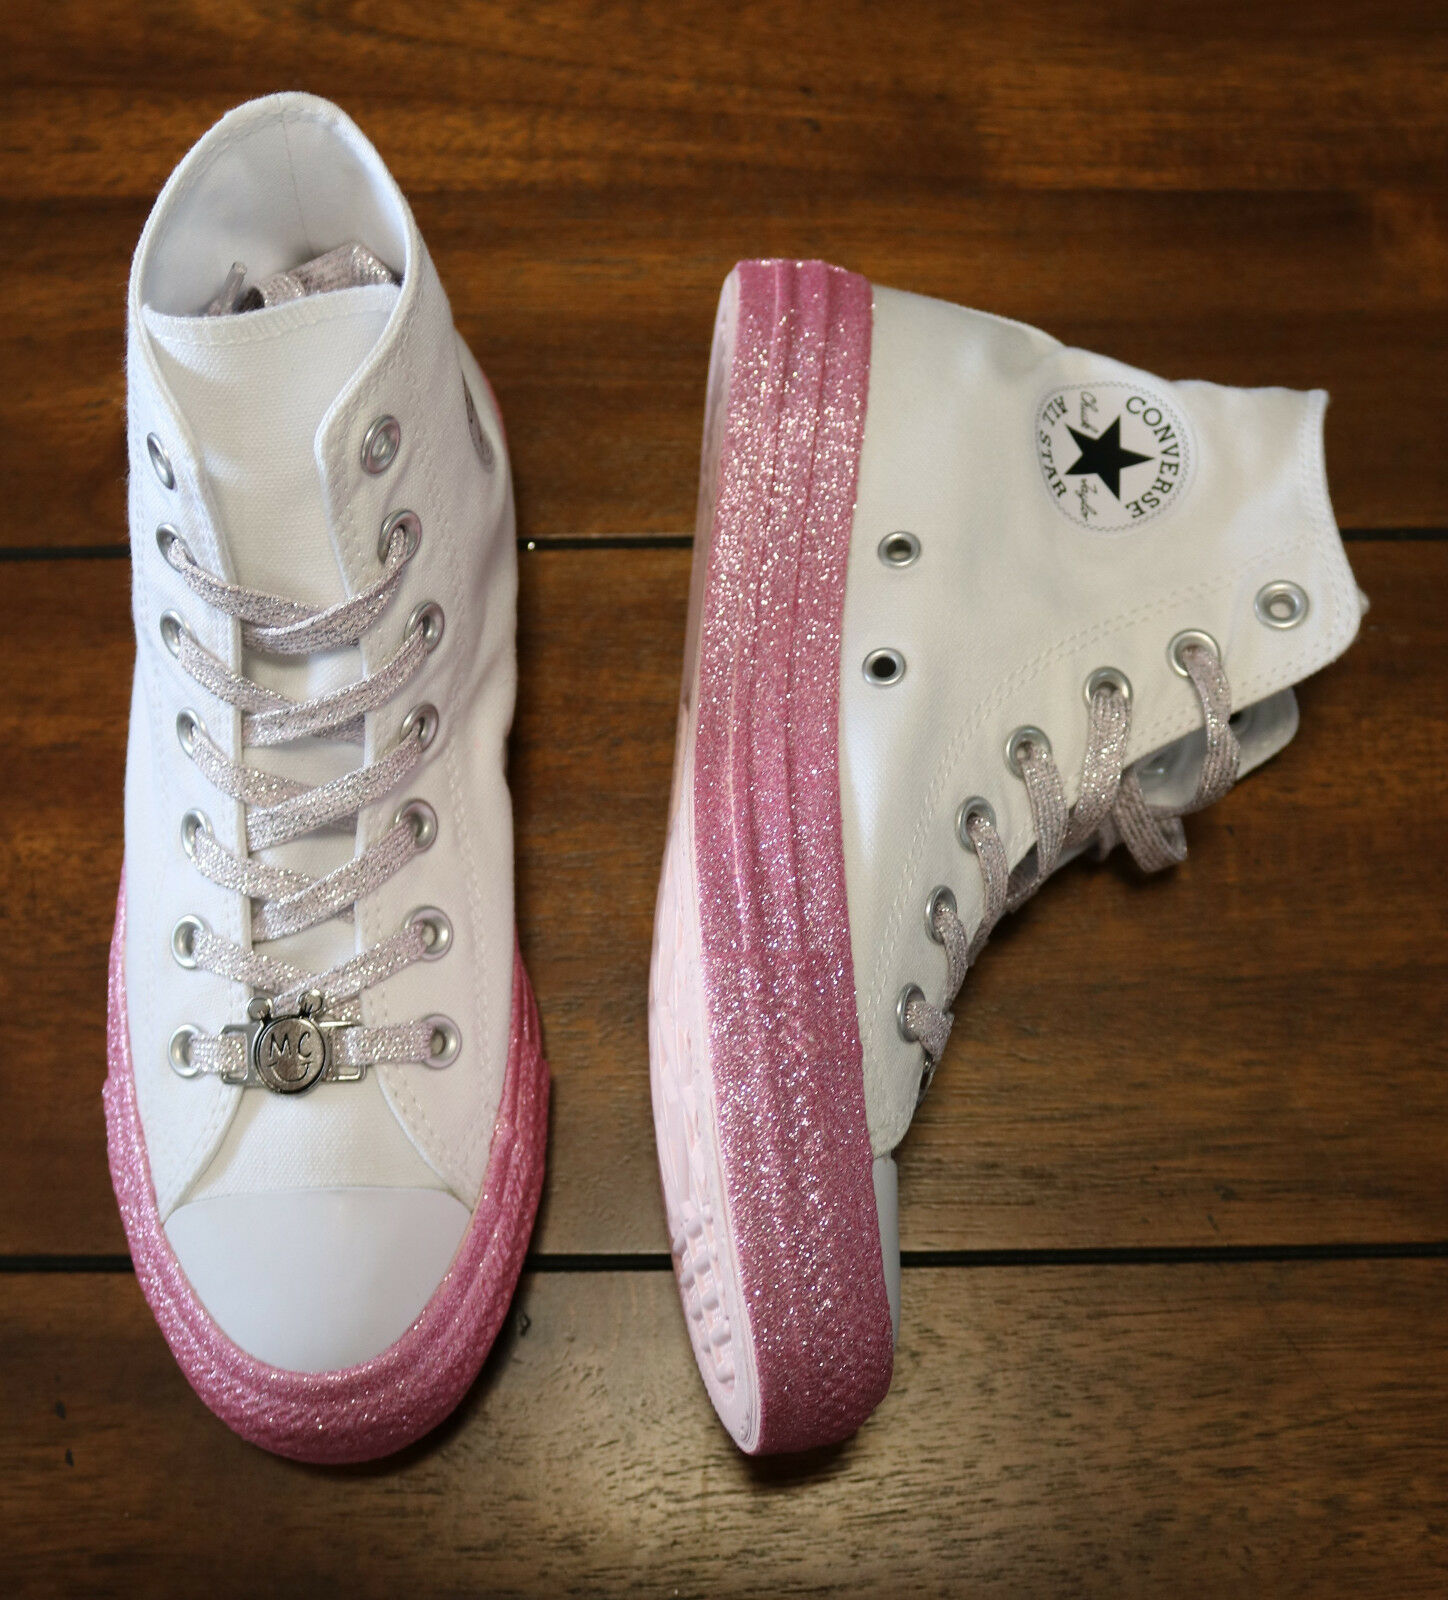 e4c5c658b4d Womens Converse x Miley Cyrus Chuck Taylor All Star Glitter High Top White  Pink